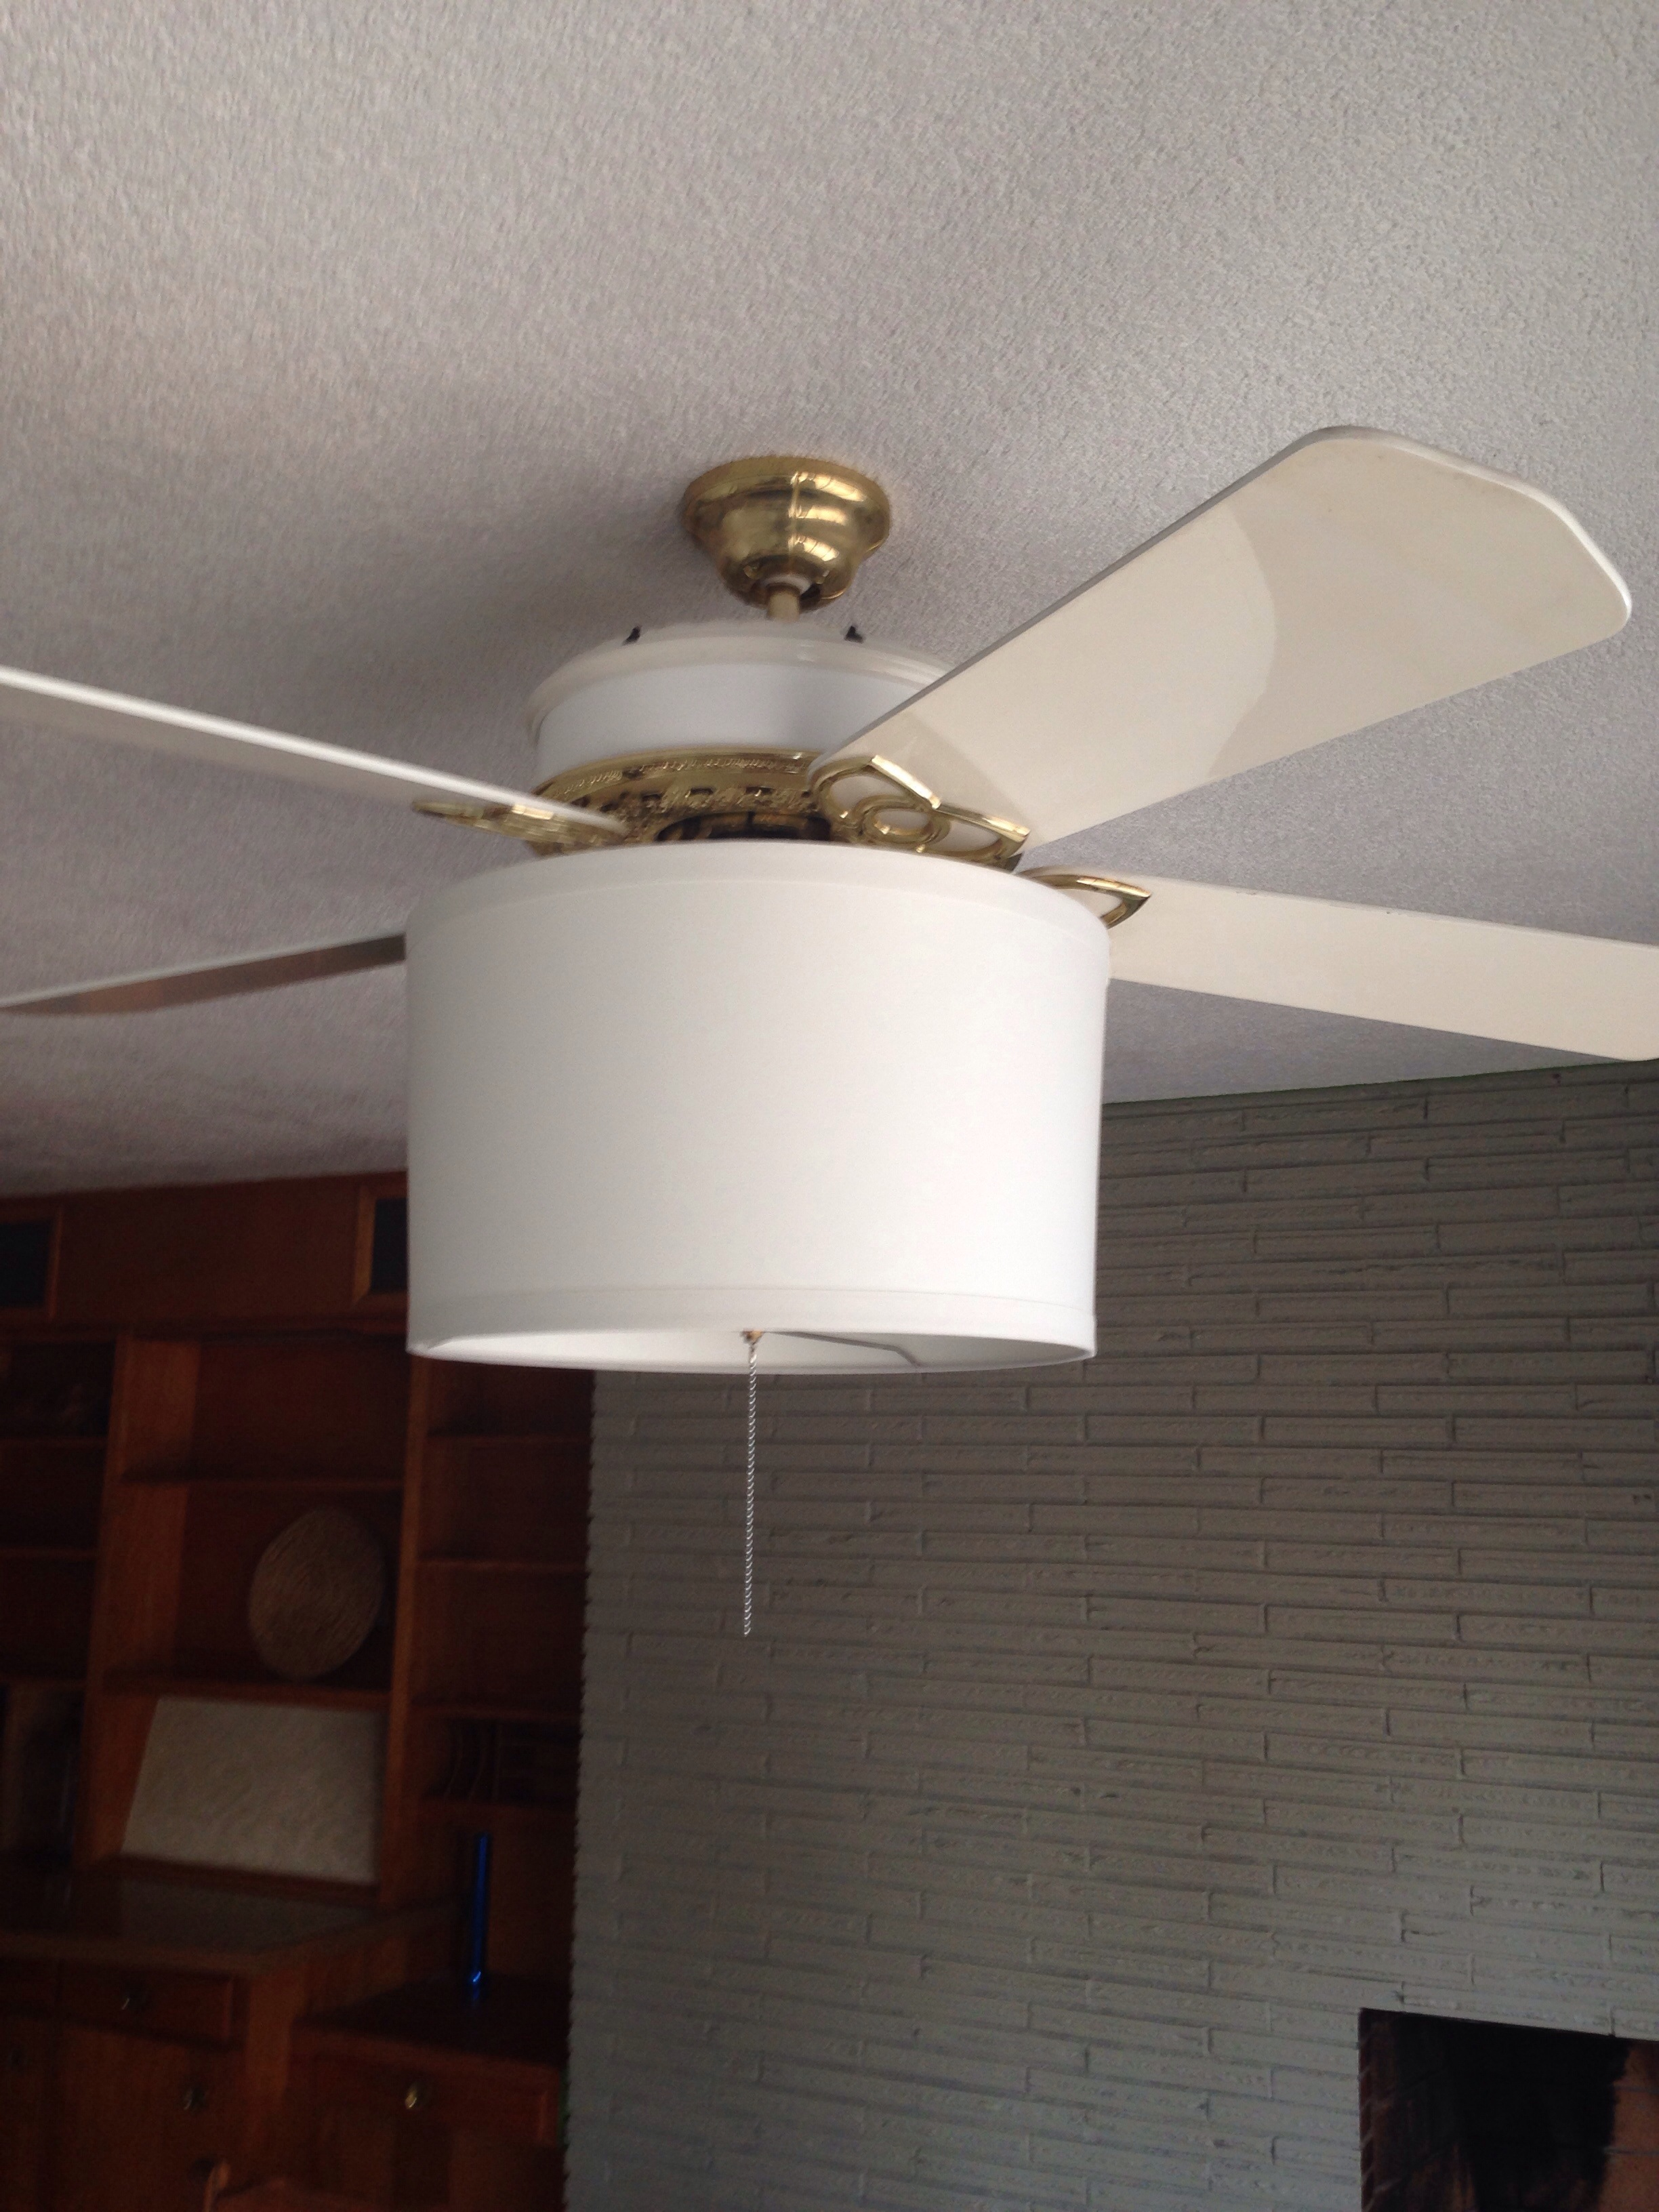 x tiffany ceiling sizing shade light very for decor good covers shades fan home inspirations lights